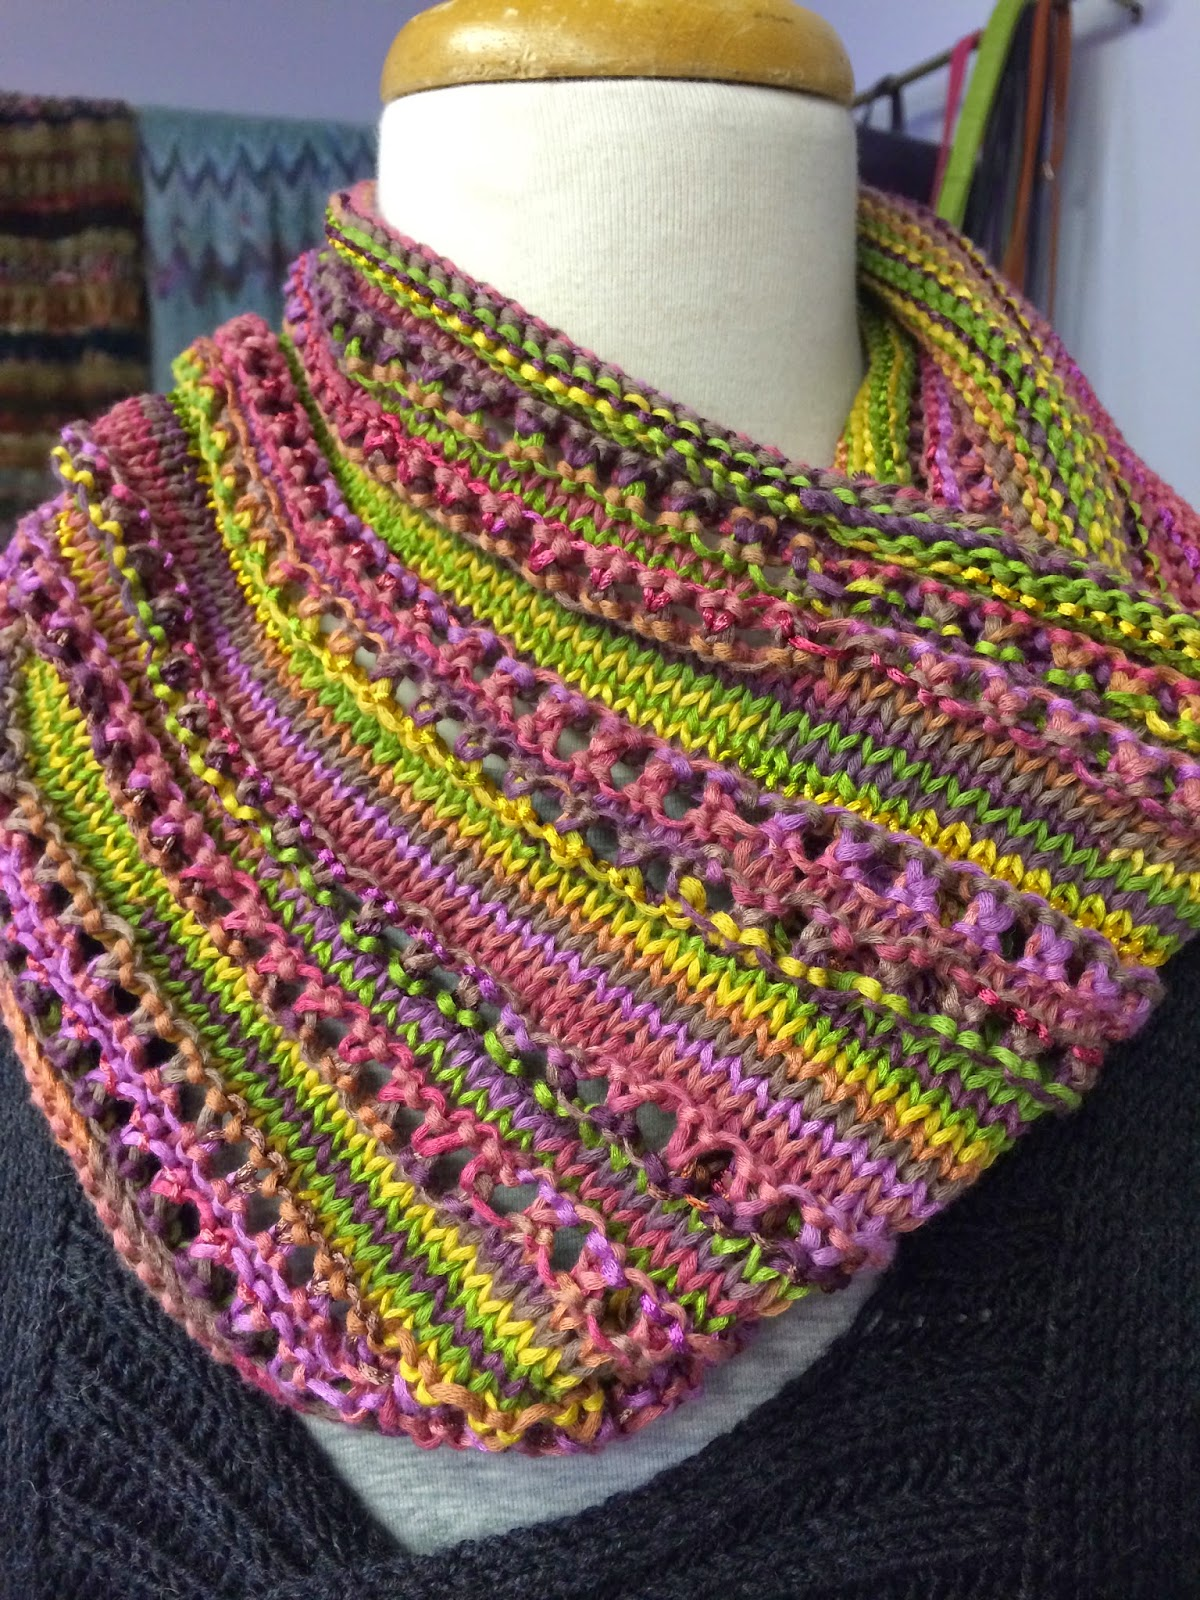 A Really Good Yarn Getting Ready For The Frolic